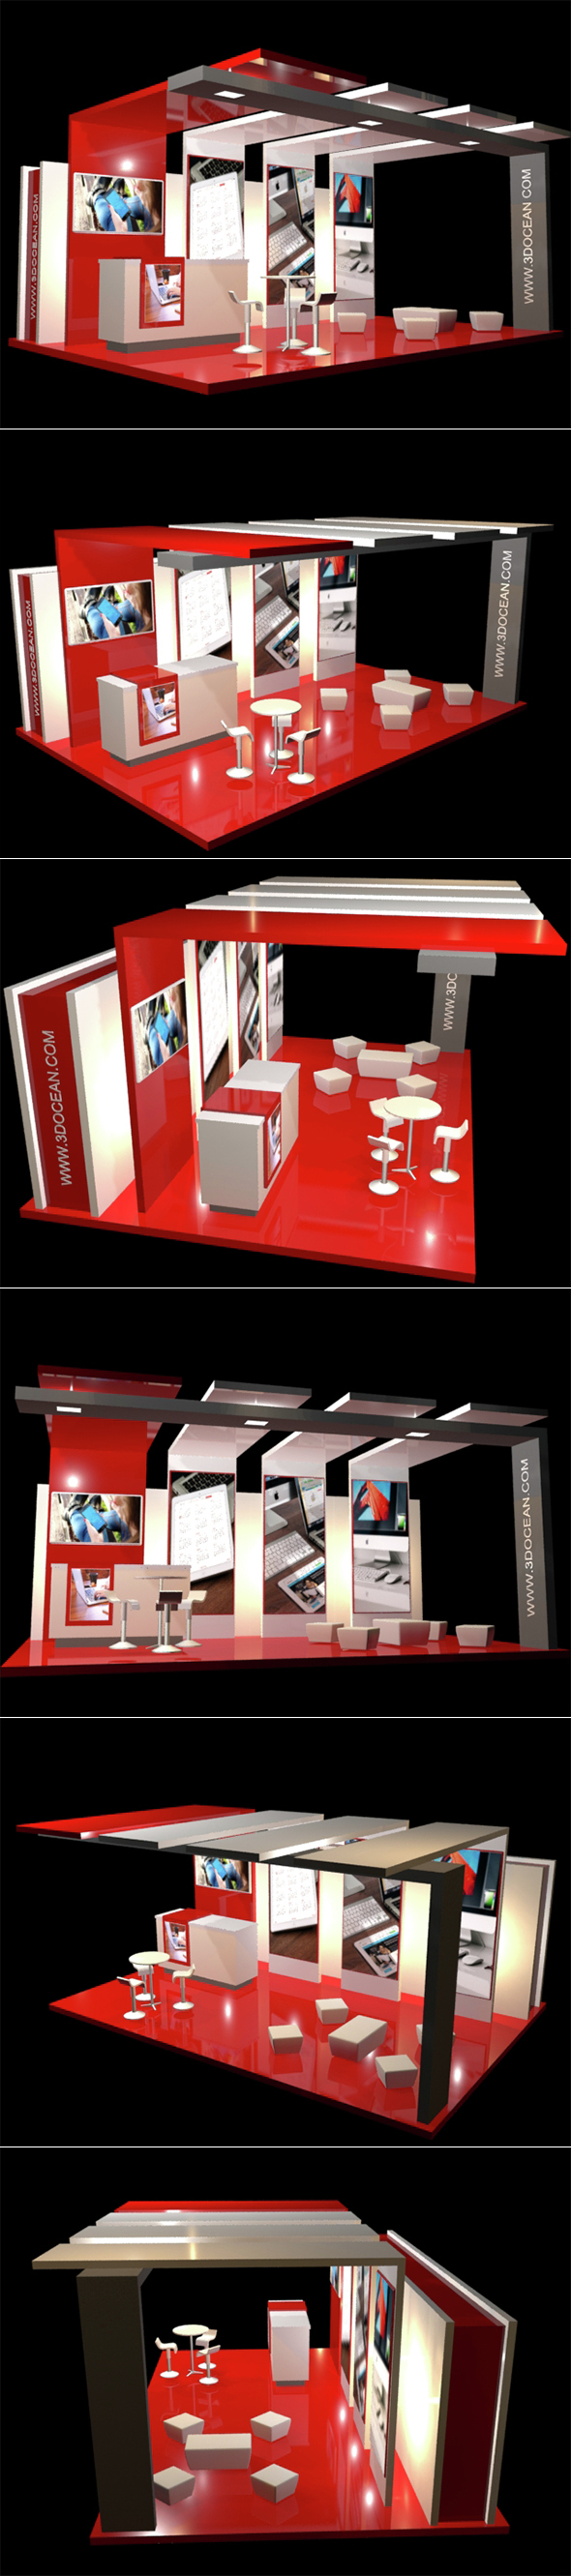 Exhibition Stand Elements : Modern exhibition stand and elements by kenneth docean